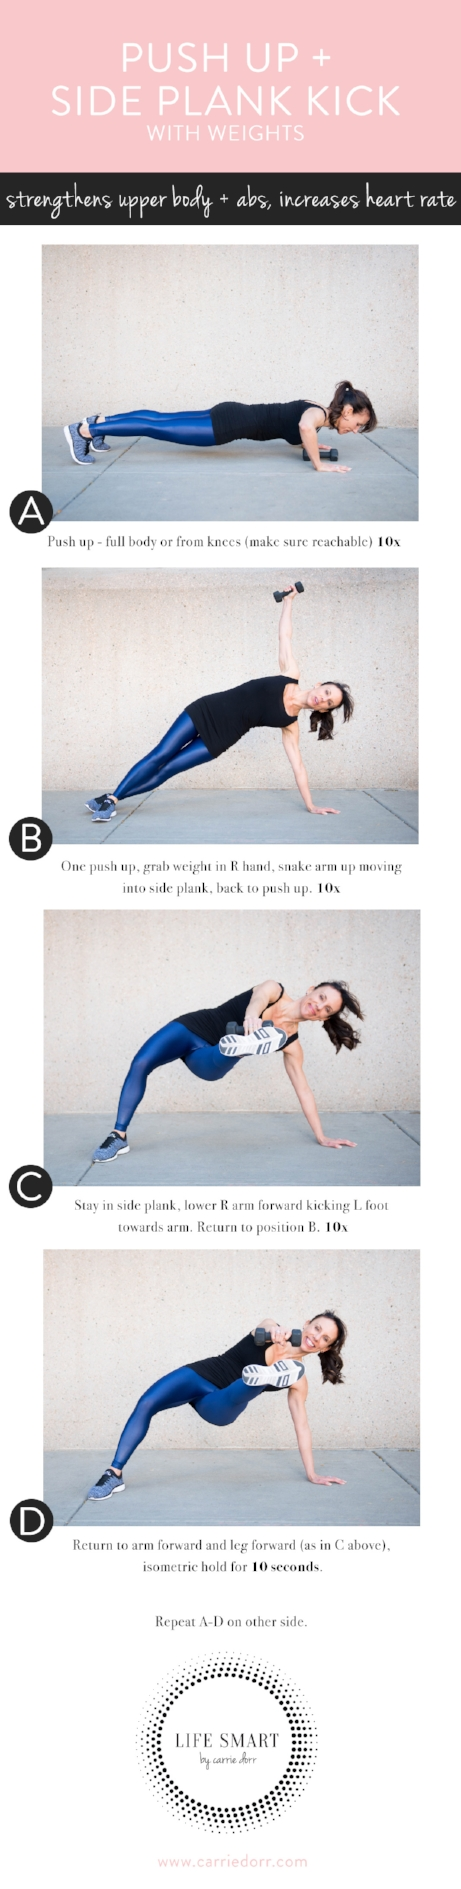 Push Up + Side Plank Kick- LIFE SMART by Carrie Dorr